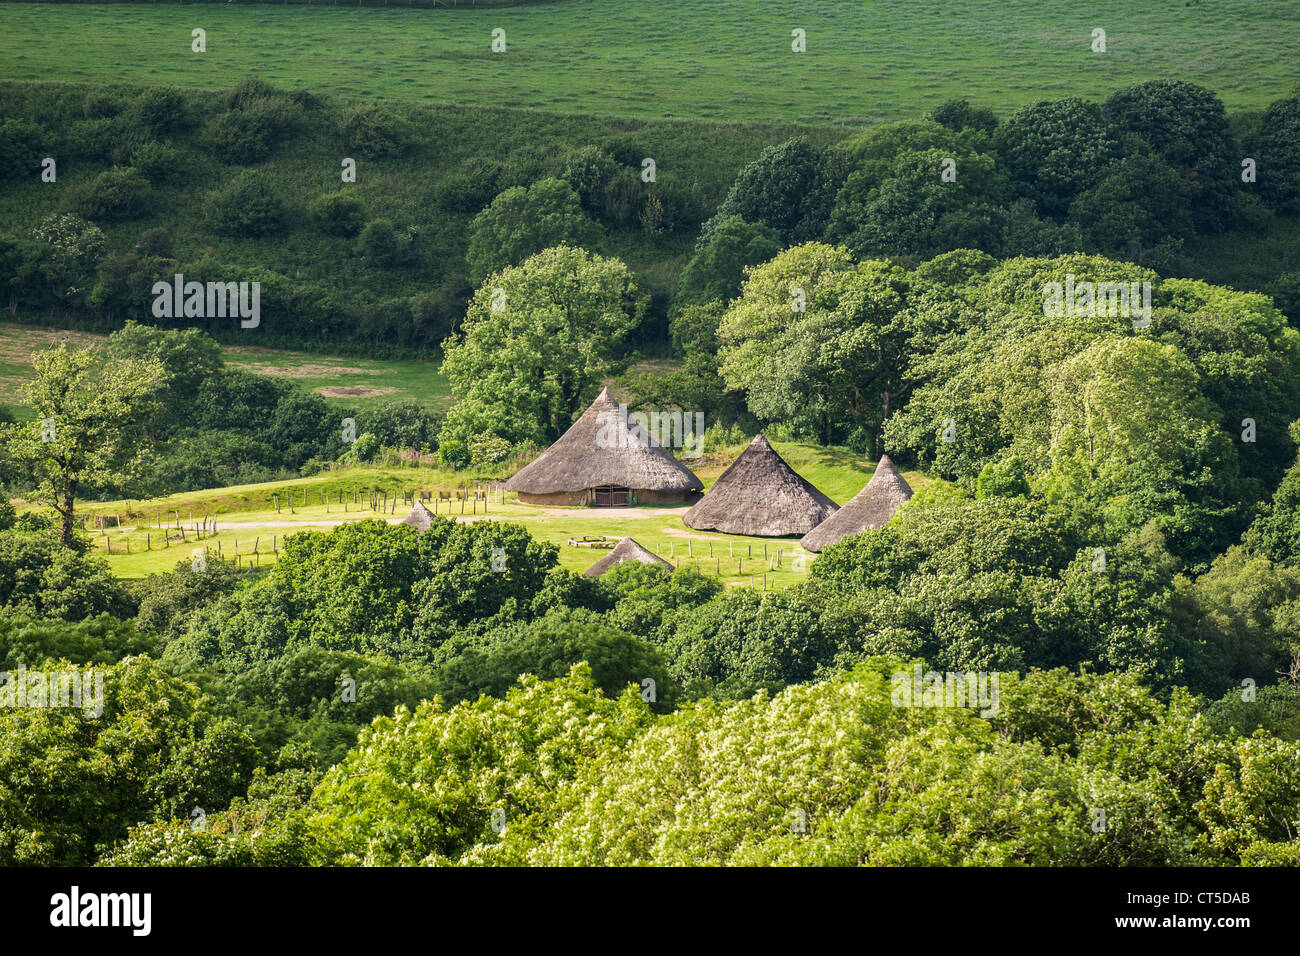 Castell Henllys reconstructed iron age hill fort and round houses, Pembrokeshire Wales UK - Stock Image